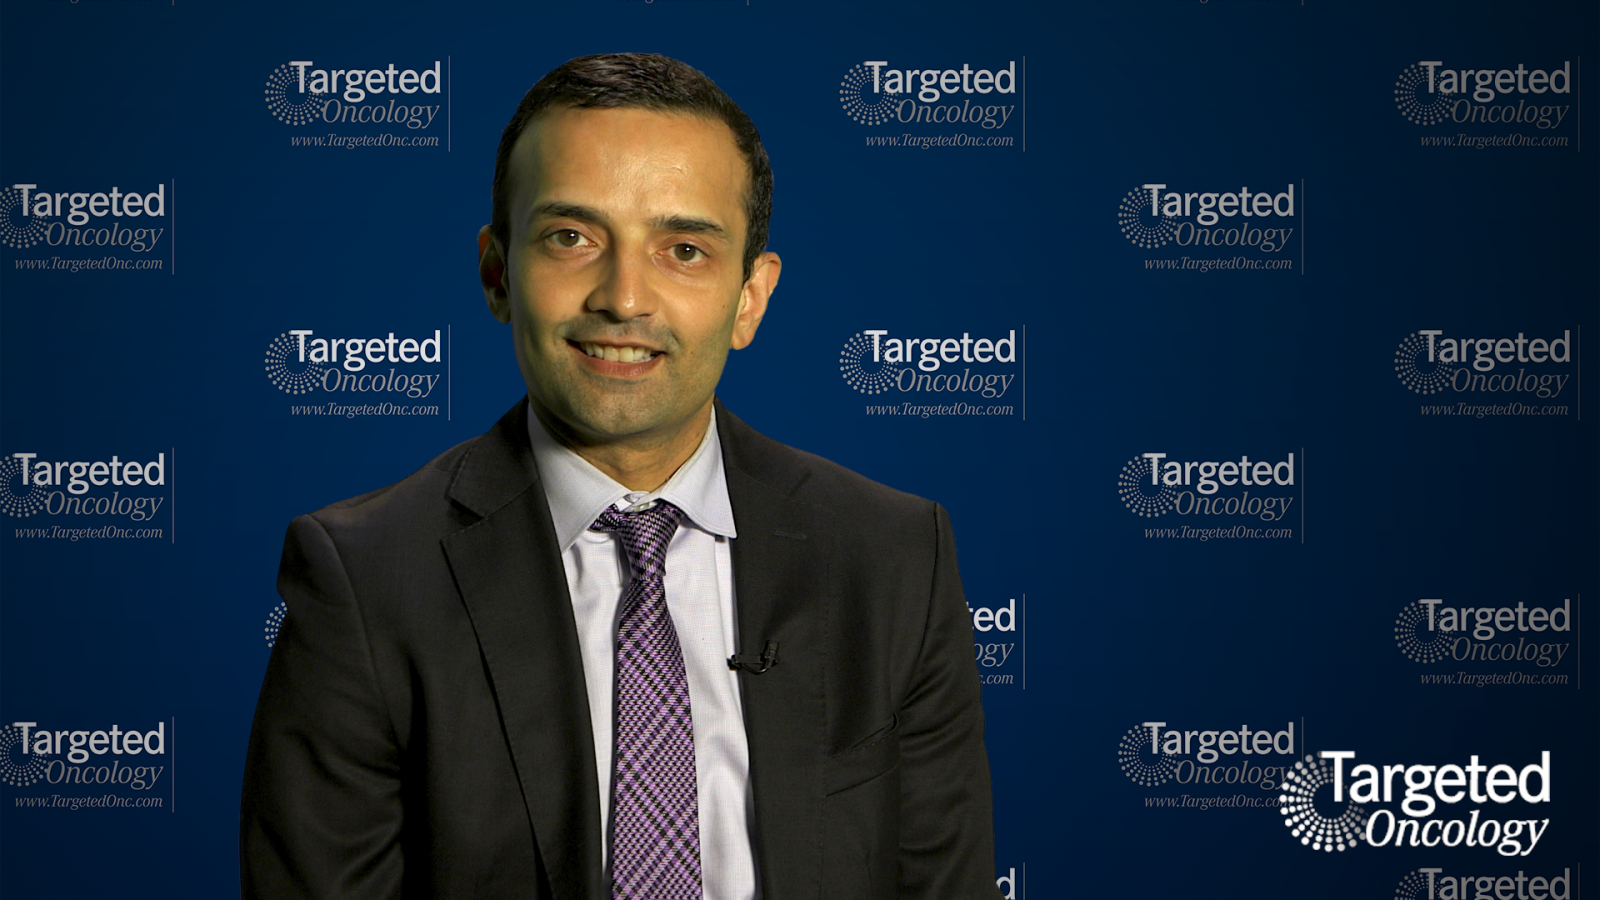 Real-World Advice for IRd Triplet in Relapsed MM